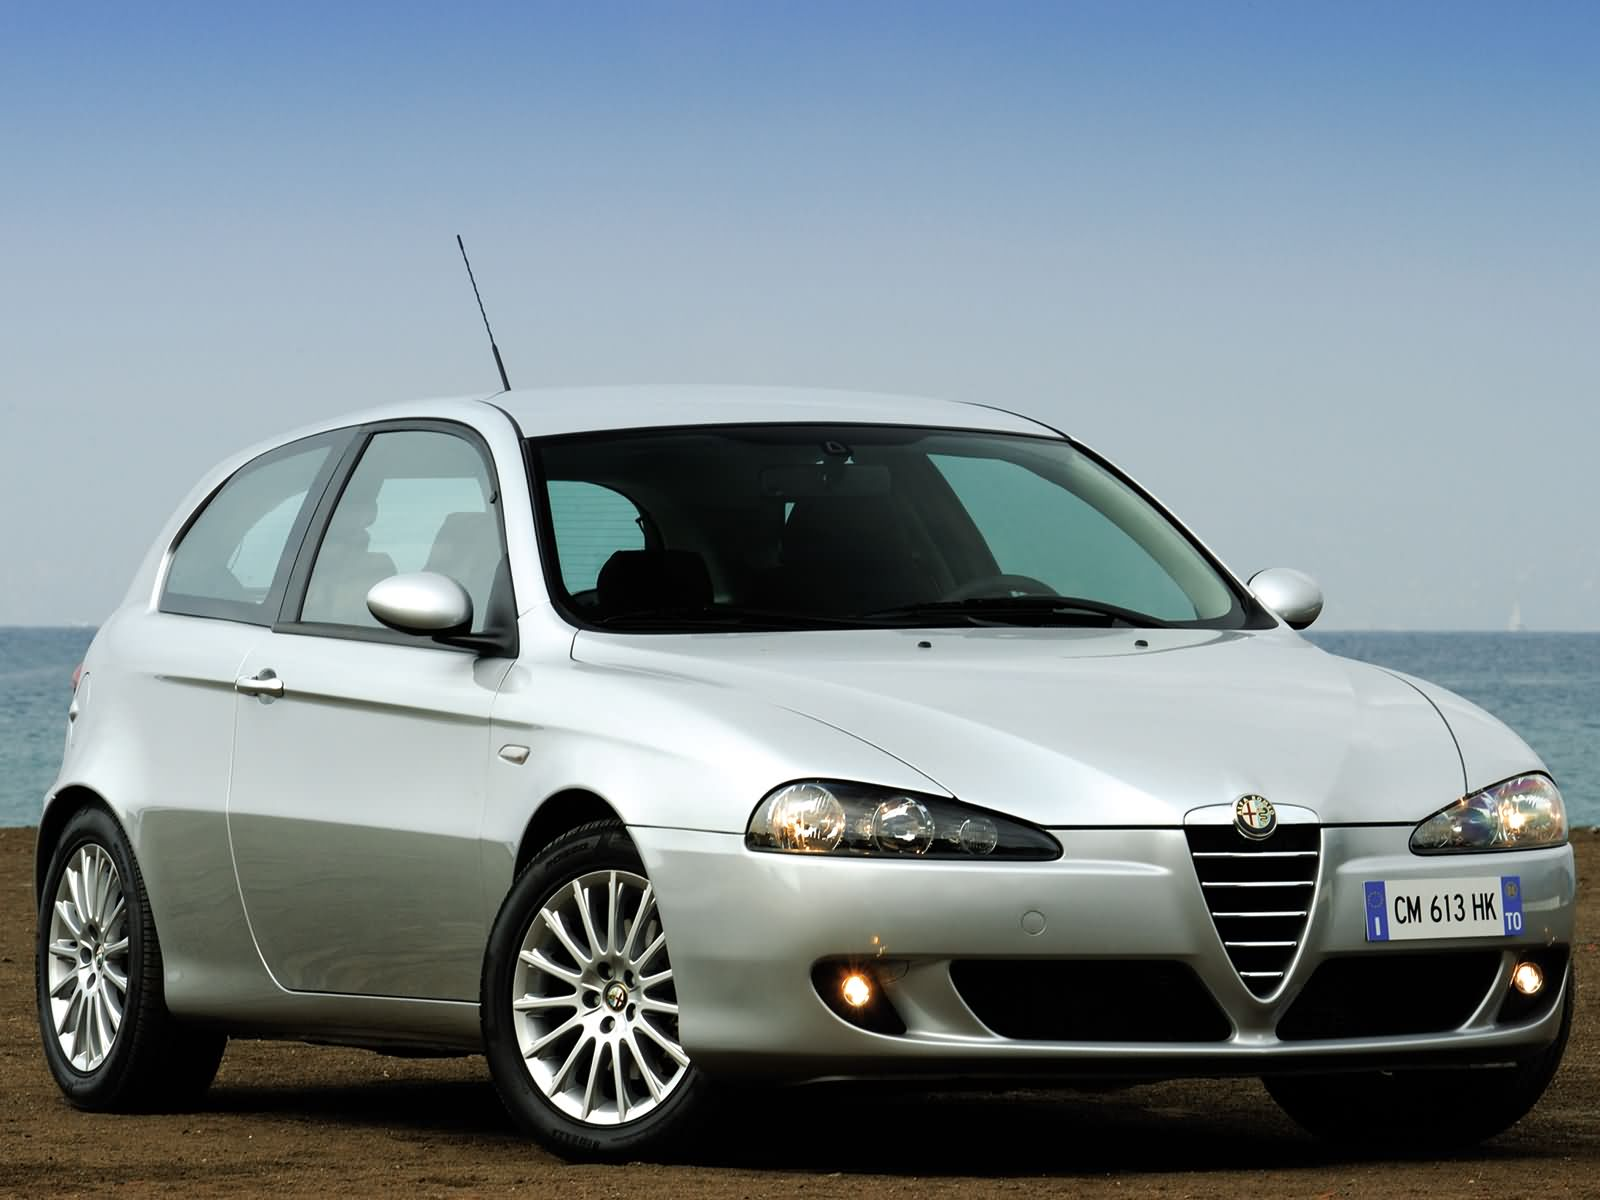 alfa romeo 147 3 door photos photo gallery page 3. Black Bedroom Furniture Sets. Home Design Ideas